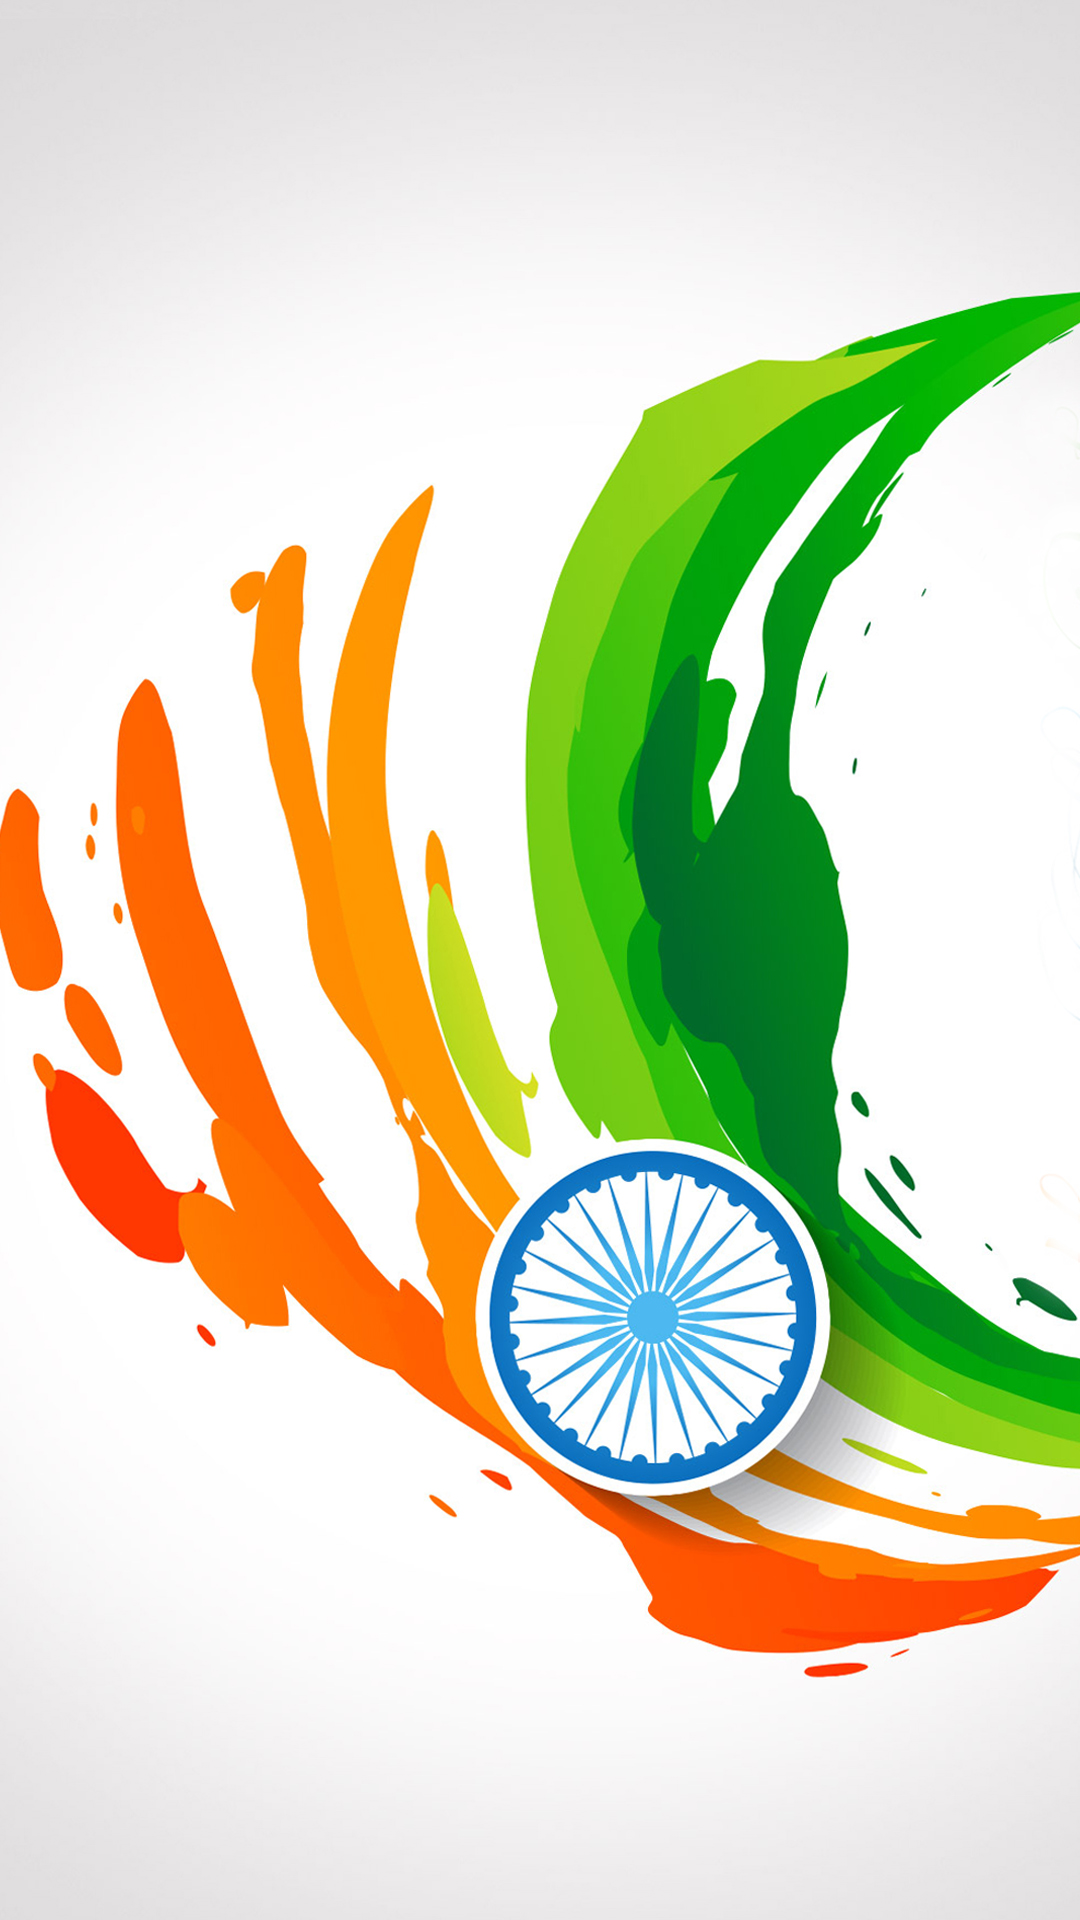 india flag for mobile phone wallpaper 14 of 17 – abstract tricolour